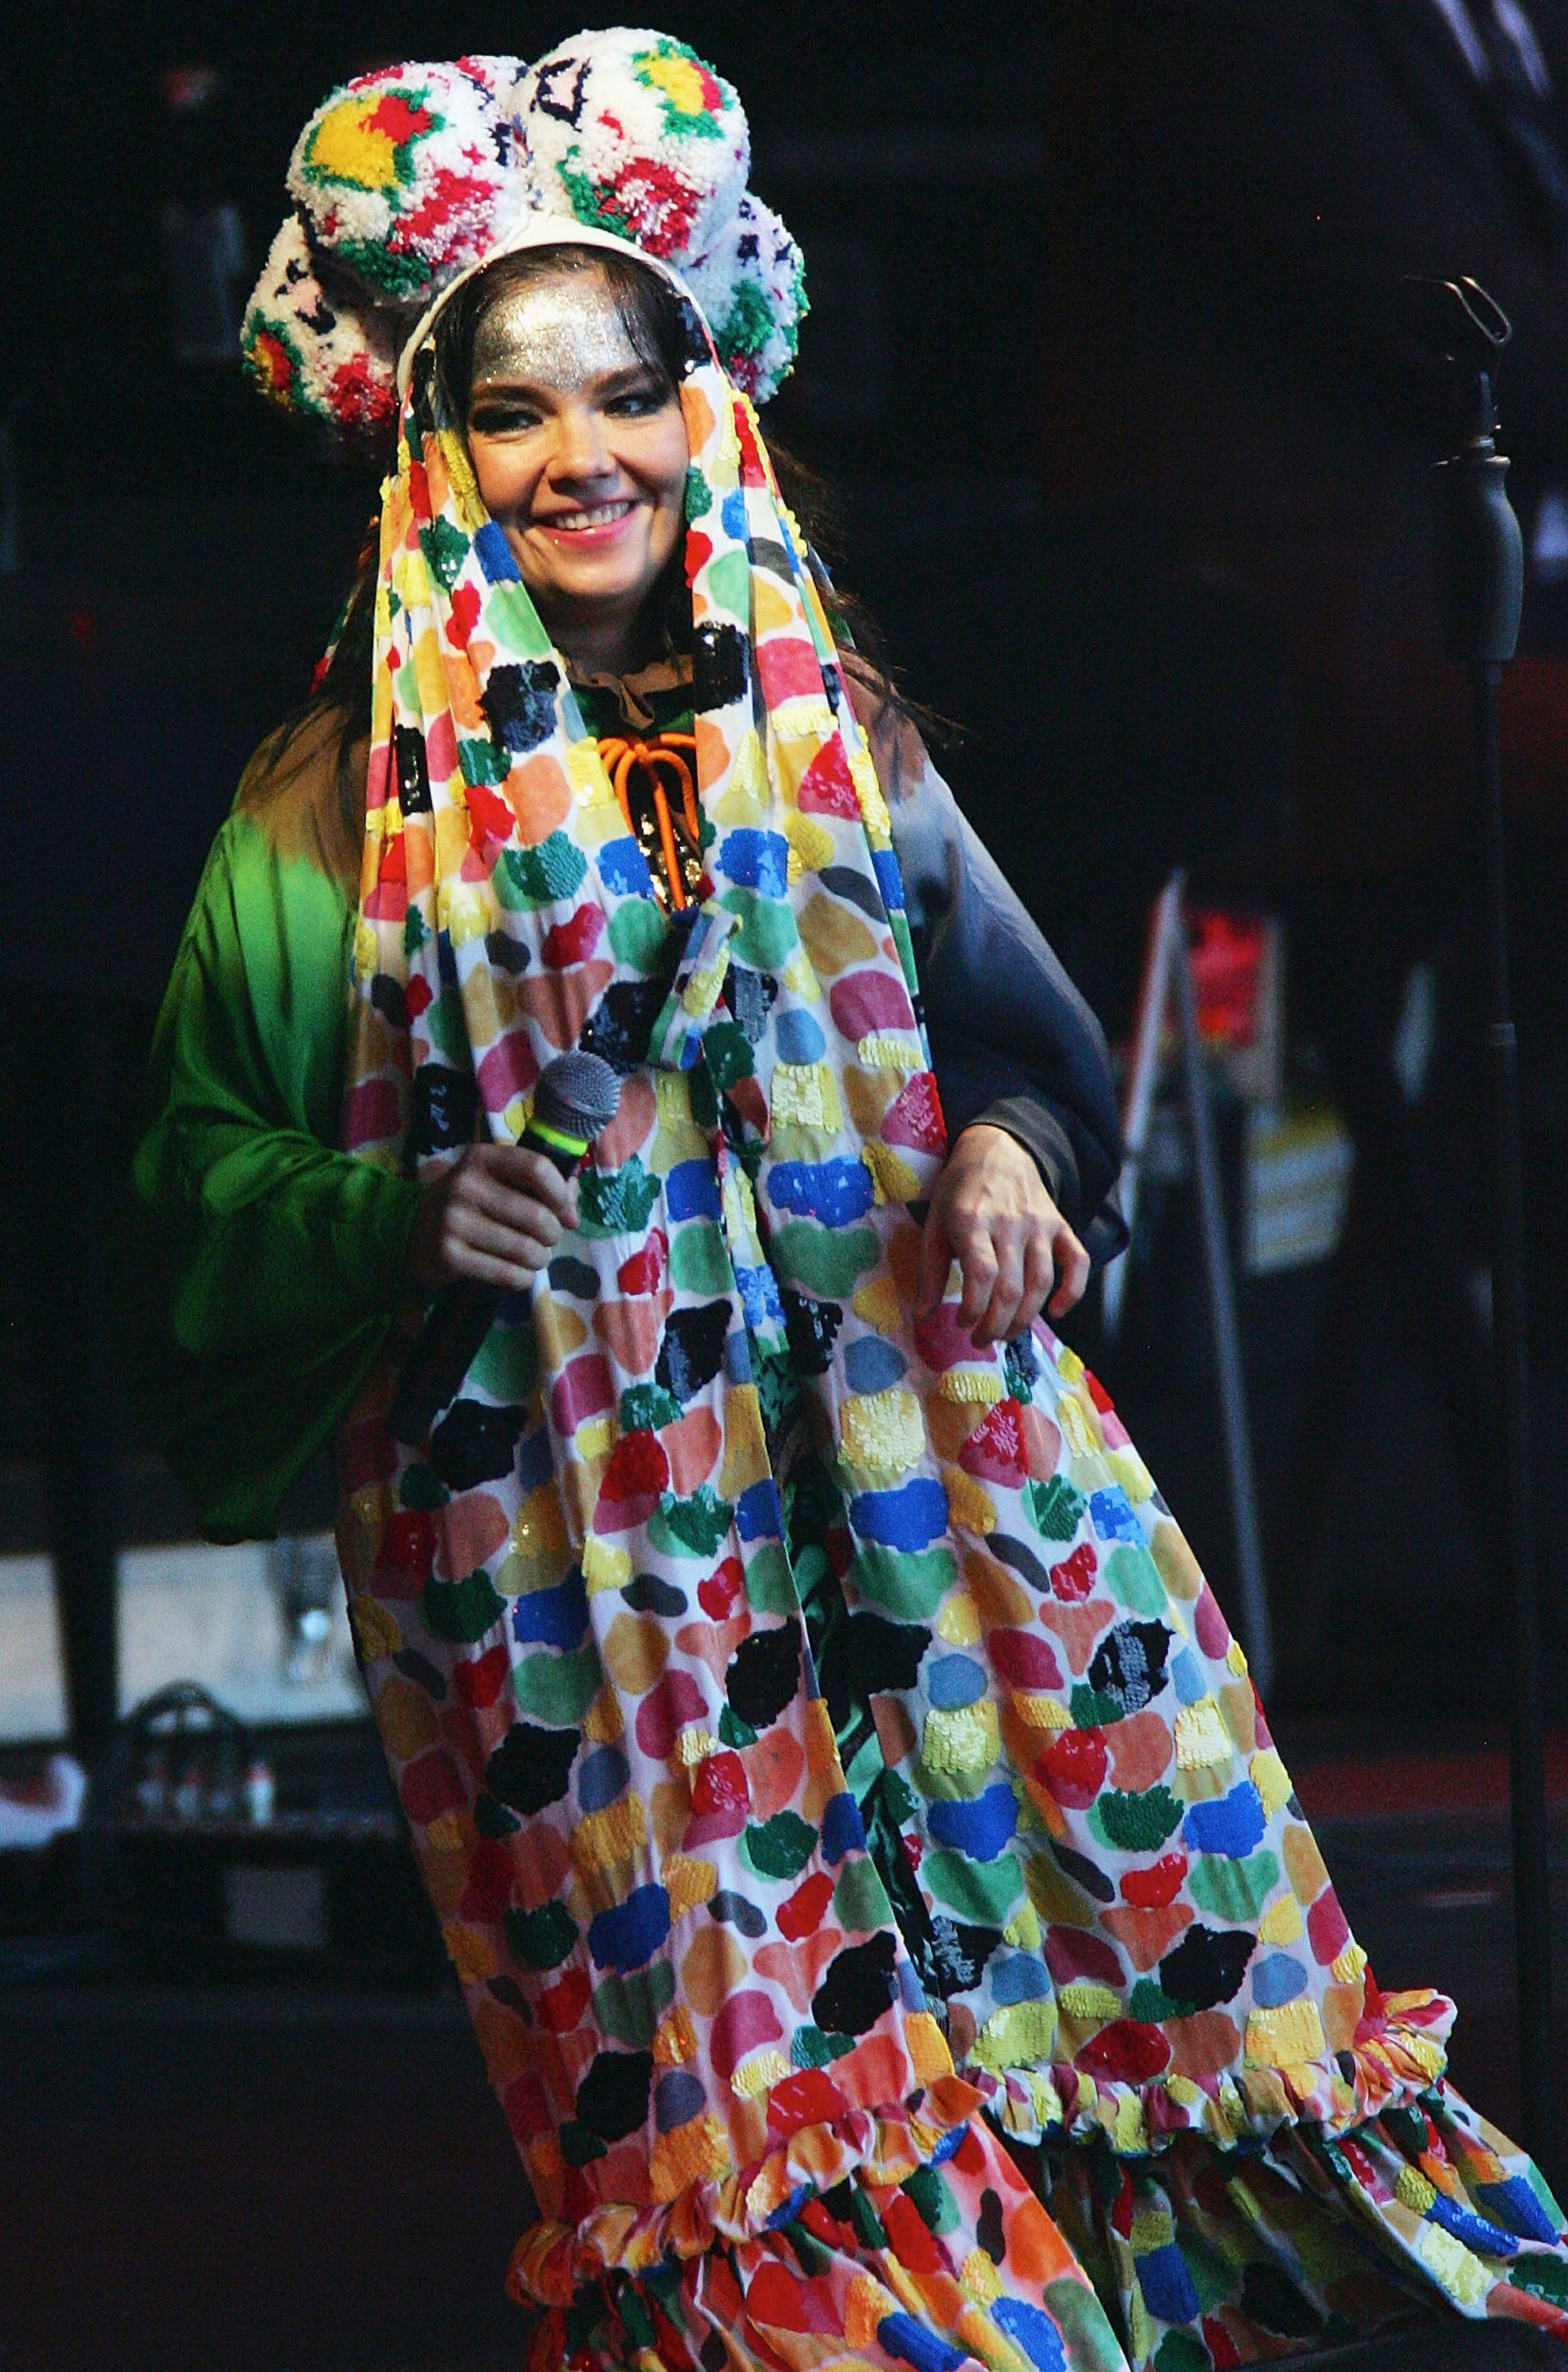 Björk performs onstage during Big Day Out in Auckland, New Zealand on Jan. 18, 2008.